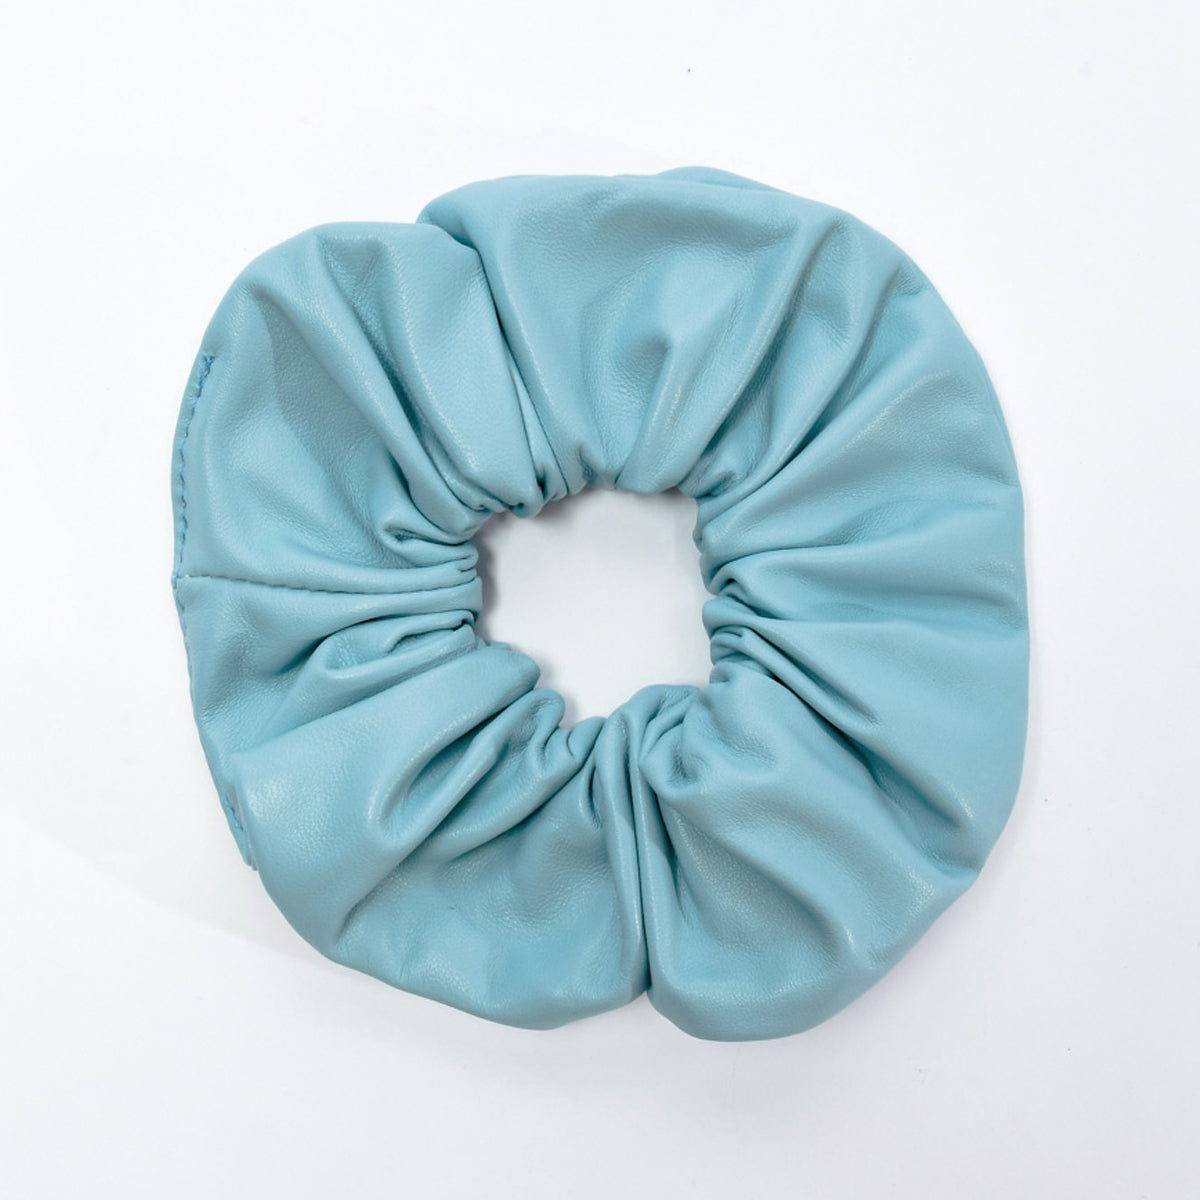 Scrunchie-Lrg-Blue-Skies-Front-View